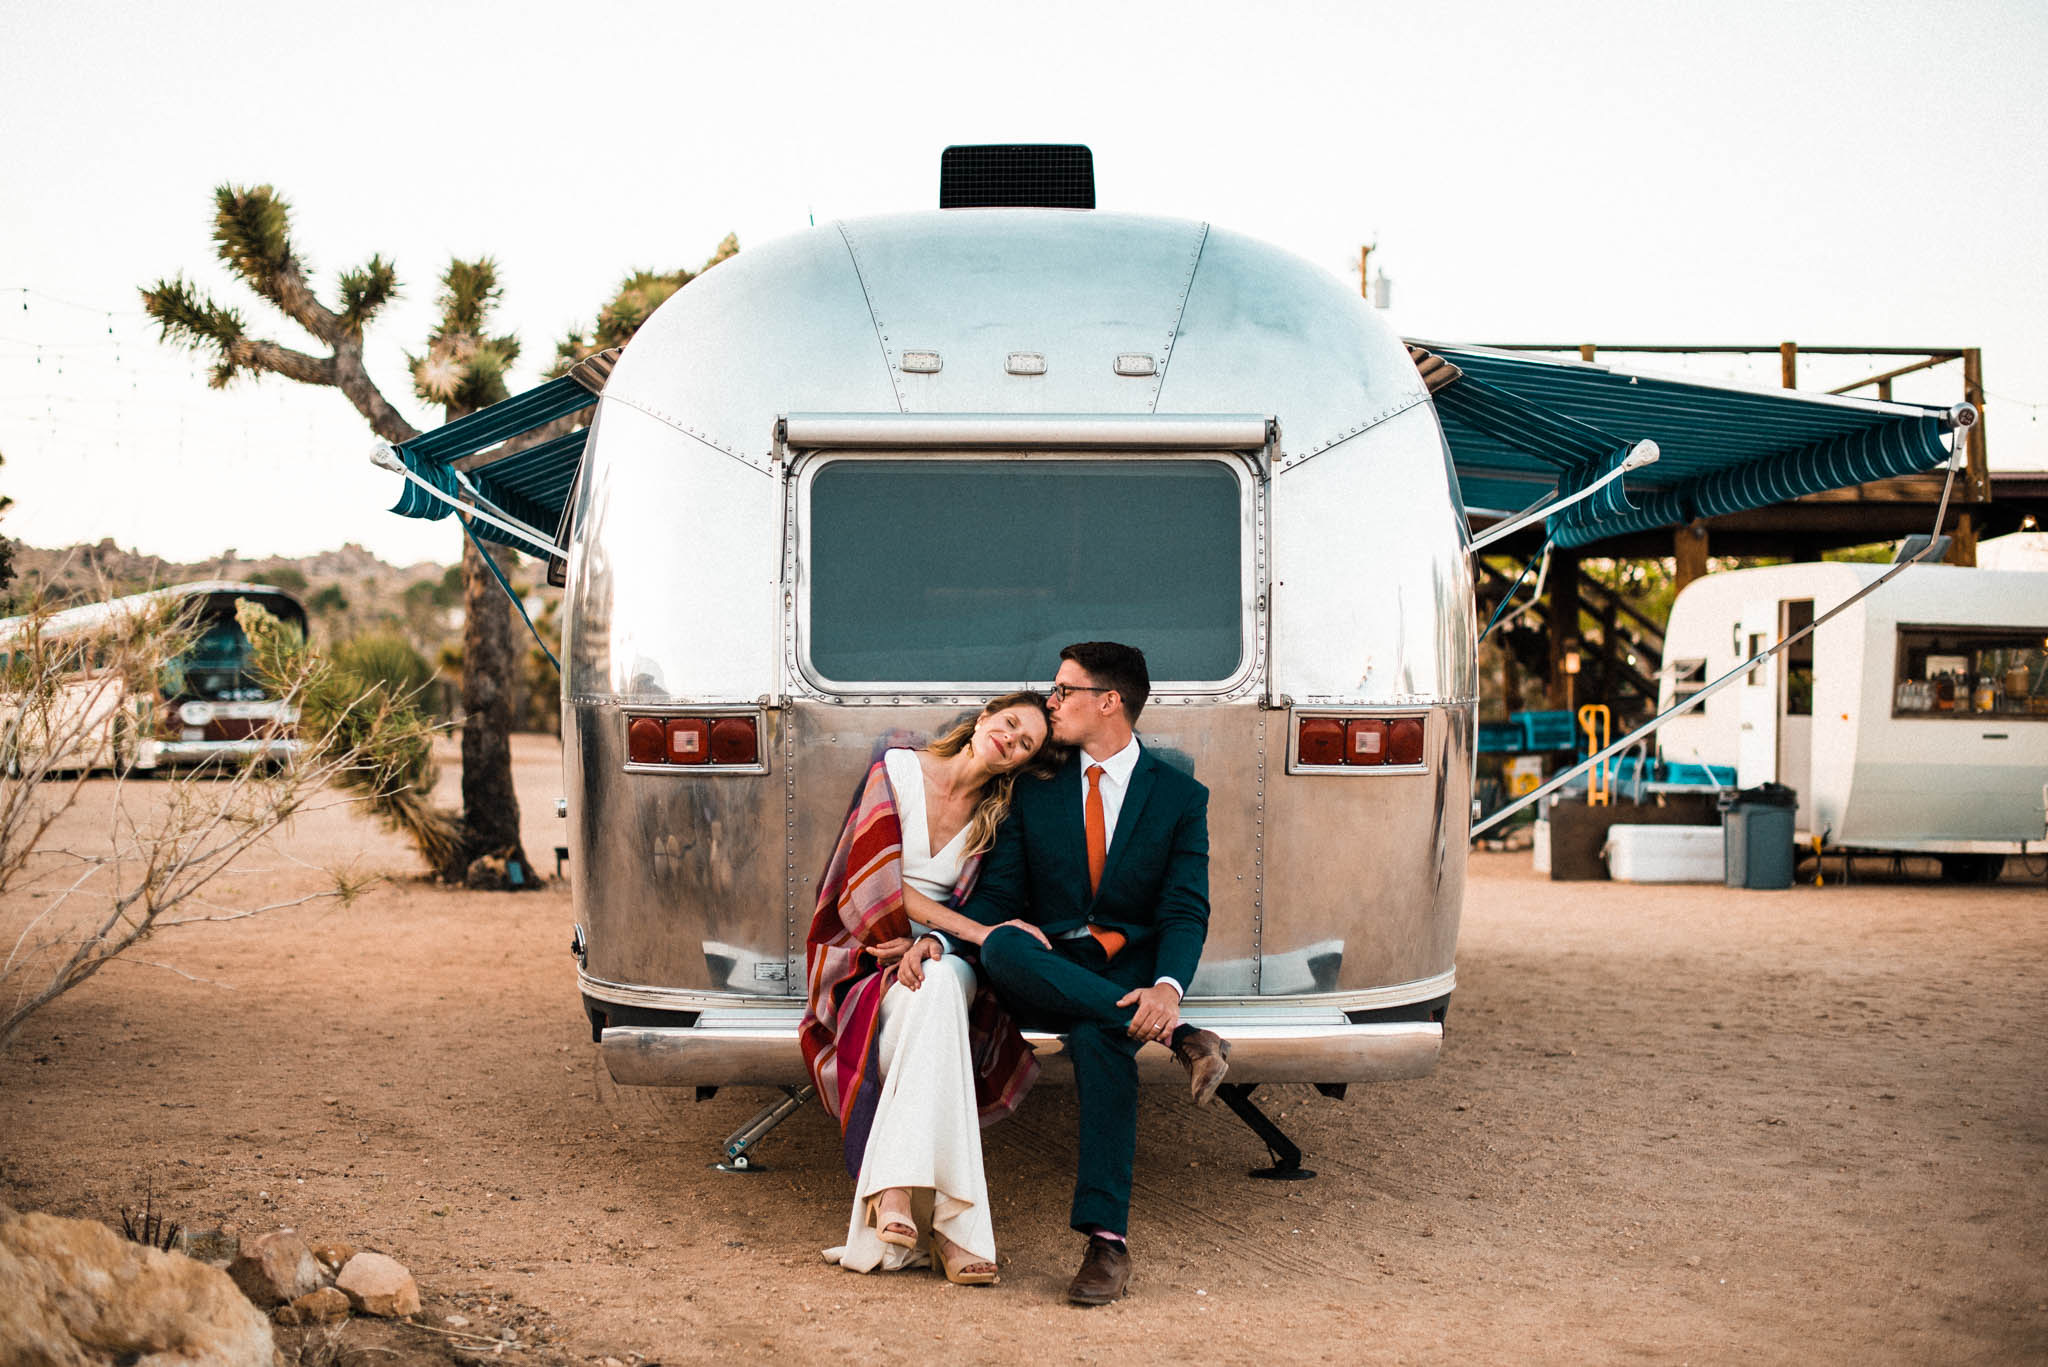 Our wedding in Joshua Tree, CA